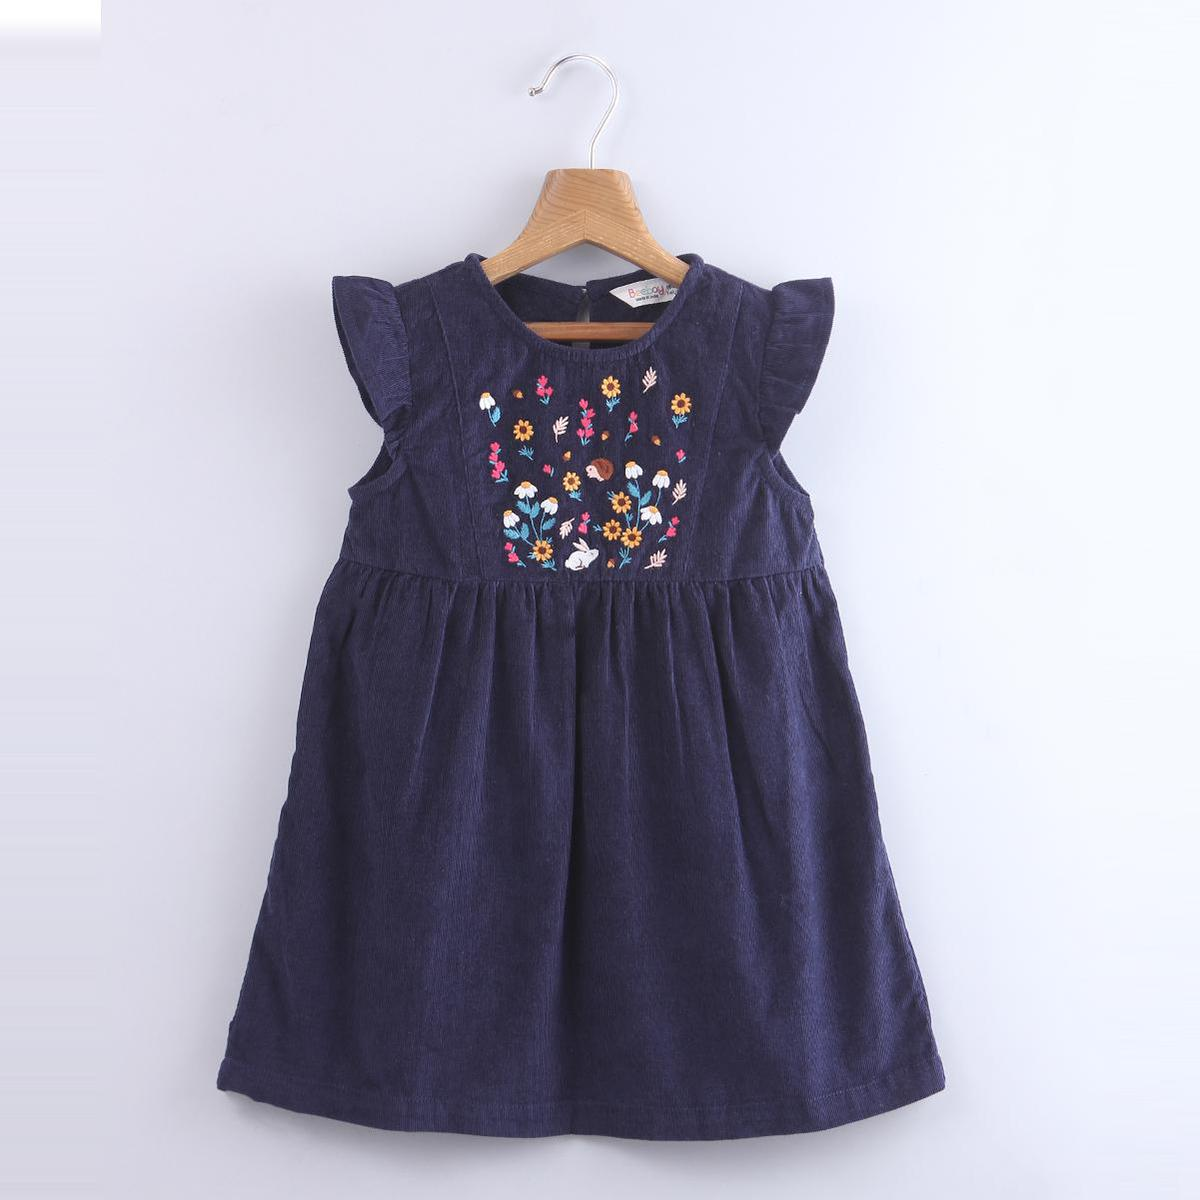 Beebay - Navy Blue Colored Floral Embroidered A-line Cotton Dress For Kids Girls